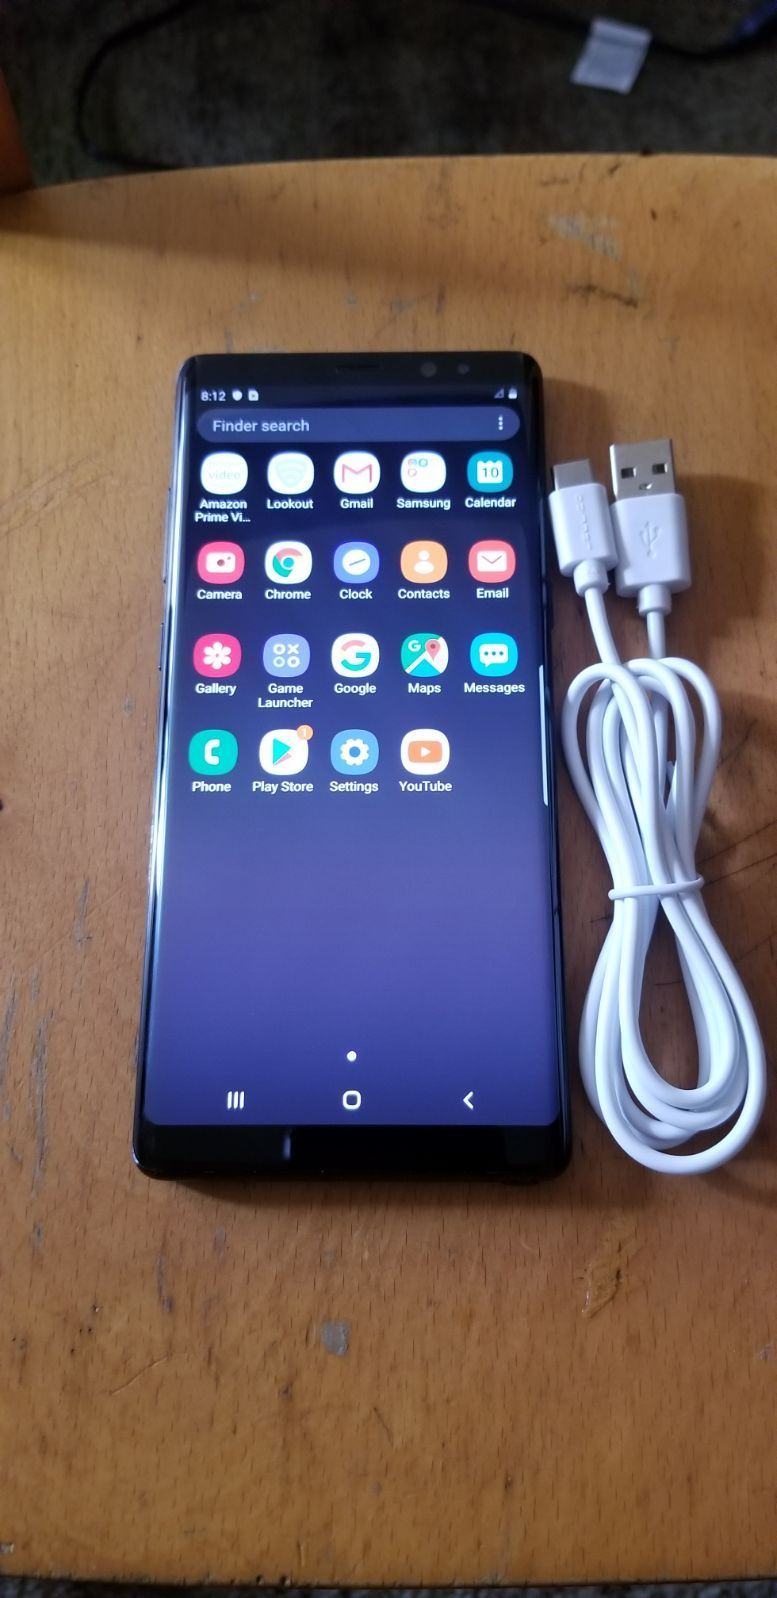 Samsung Galaxy Note 8 Unlocked 64gb Excellent Condition Work Great Unlocked For Ll Network Such At T Verizon Cricke Samsung Galaxy Note 8 Galaxy Note 8 Samsung